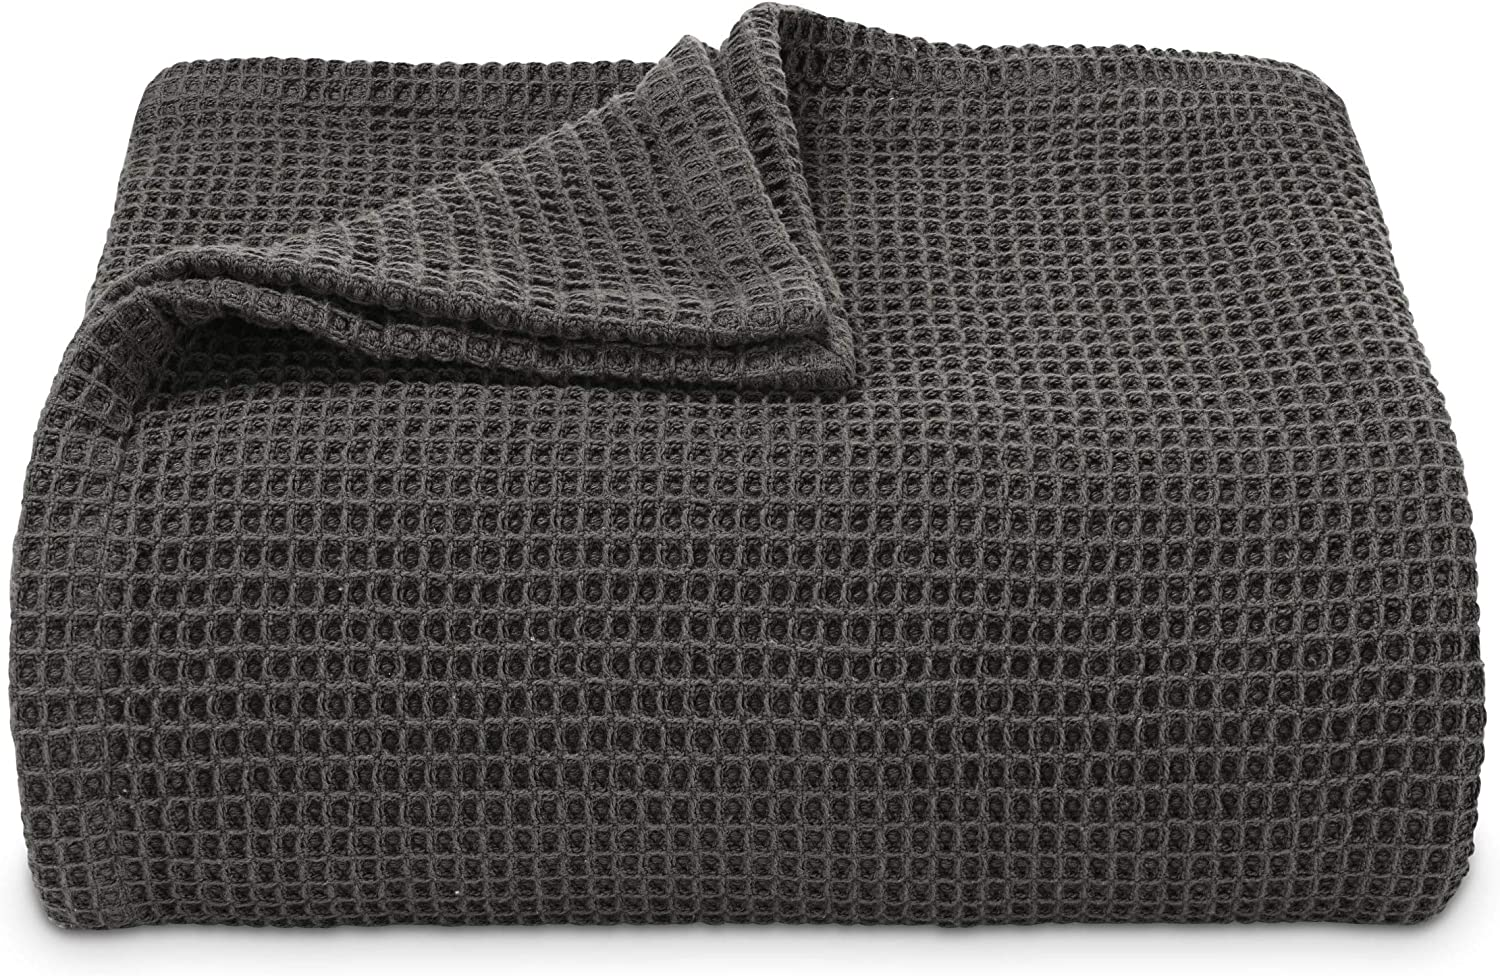 Vera Wang | Waffle Weave Collection | 100% Cotton Soft and Cozy Textured Plush Blanket for Sofa Couch or Bedroom, Modern Stylish Home Décor, King, Charcoal